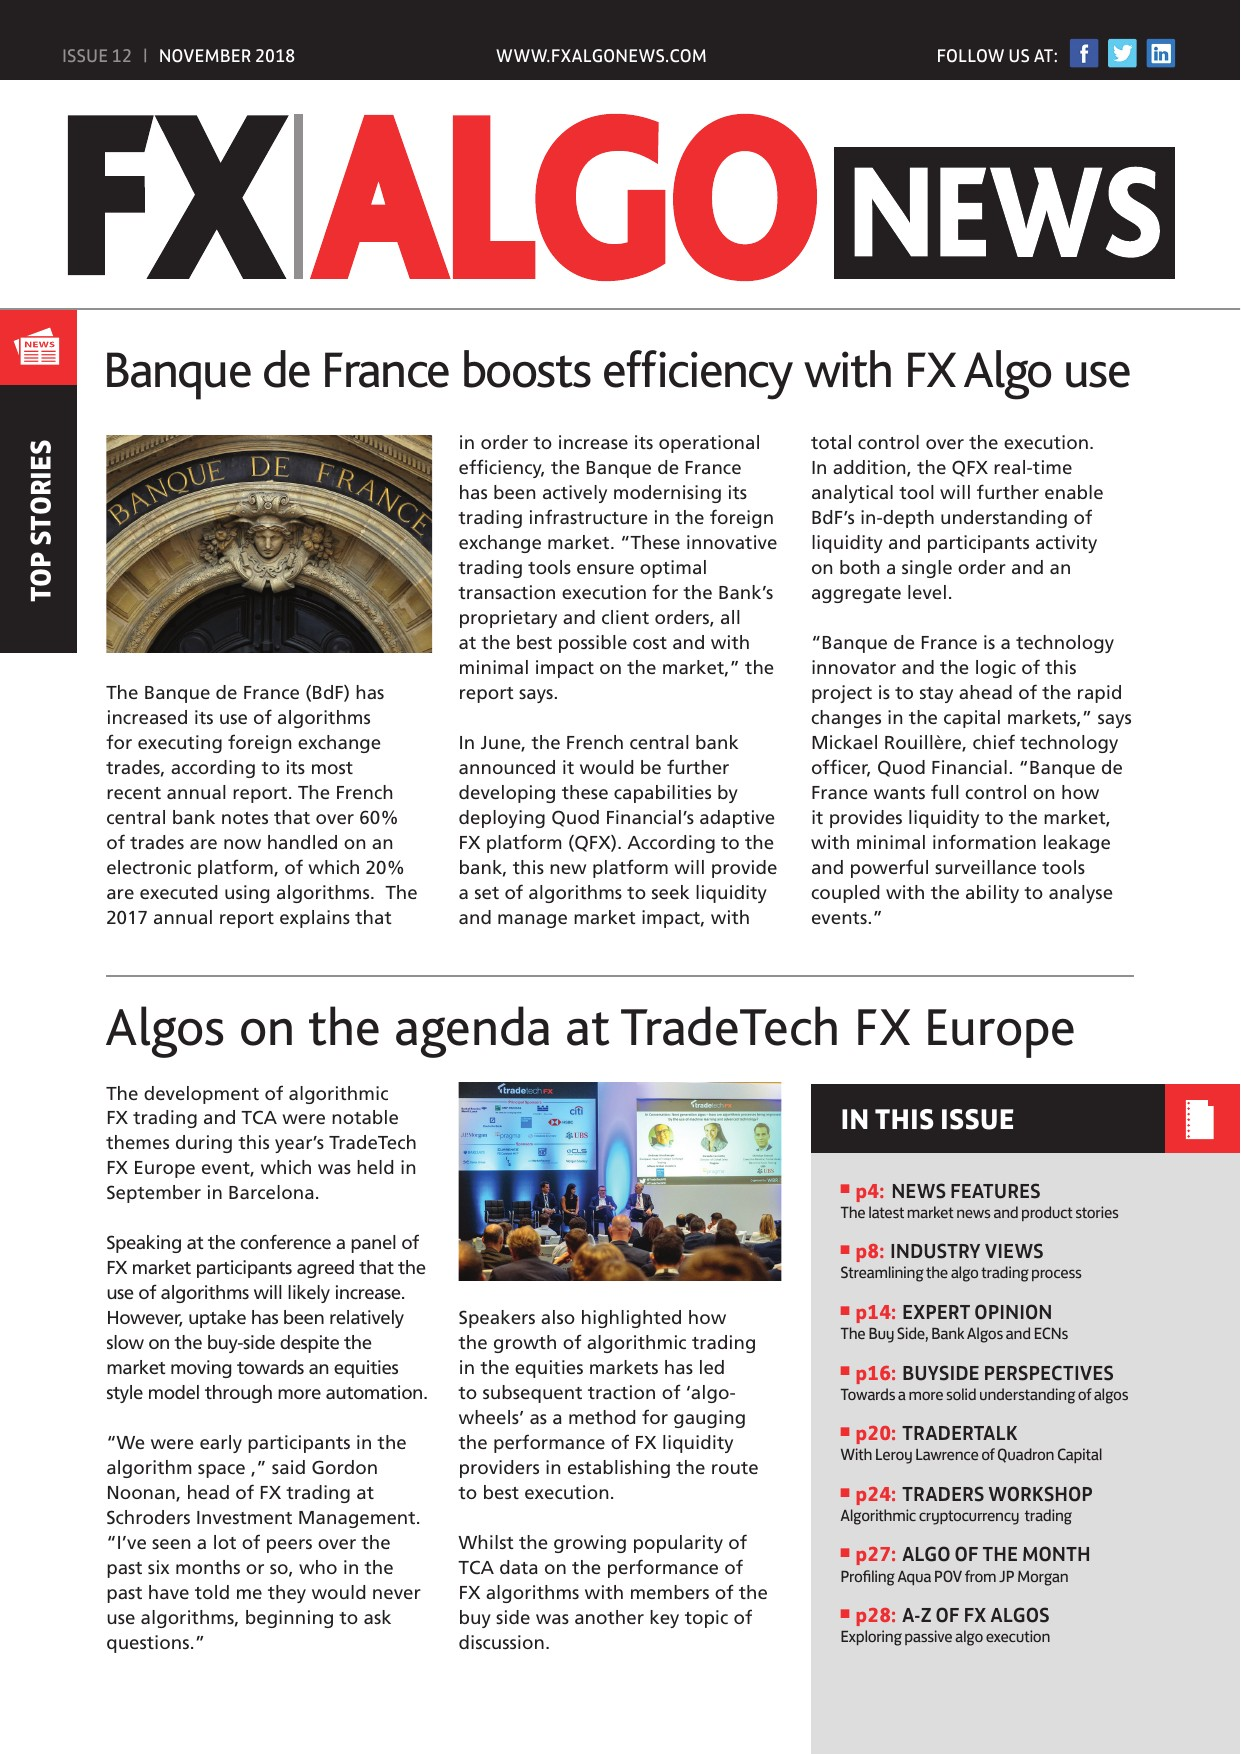 FX AlgoNews November Issue out now